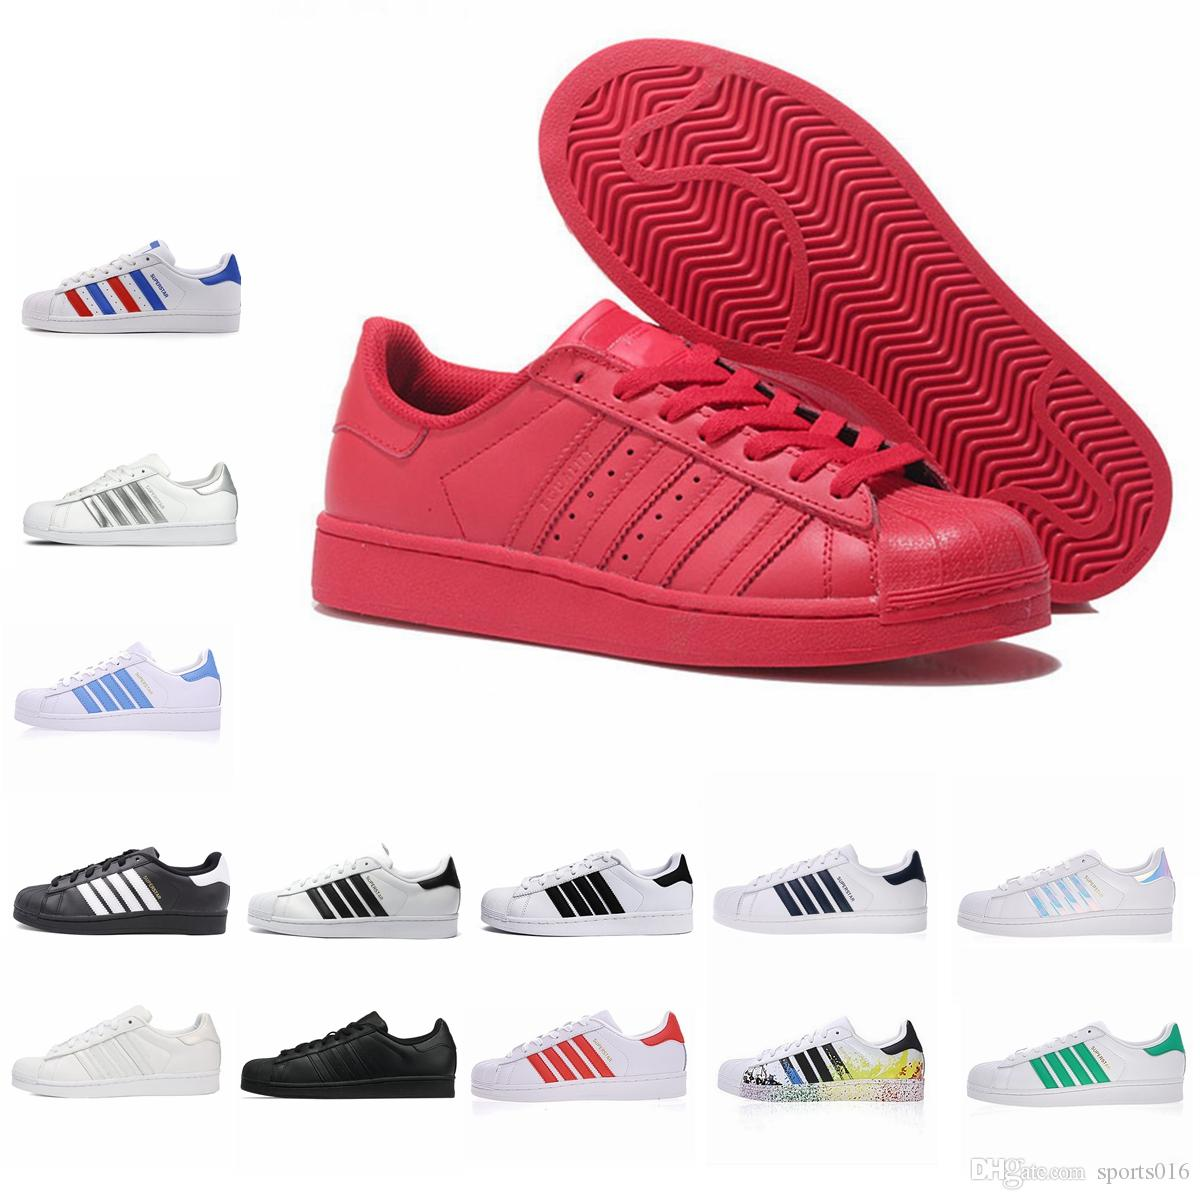 Adidas Super Star Bianco Ologramma Iridescente Junior Uomo Superstars 80s sneaker Pride Superstar Donna Uomo Sport Casual Scarpe 36-44